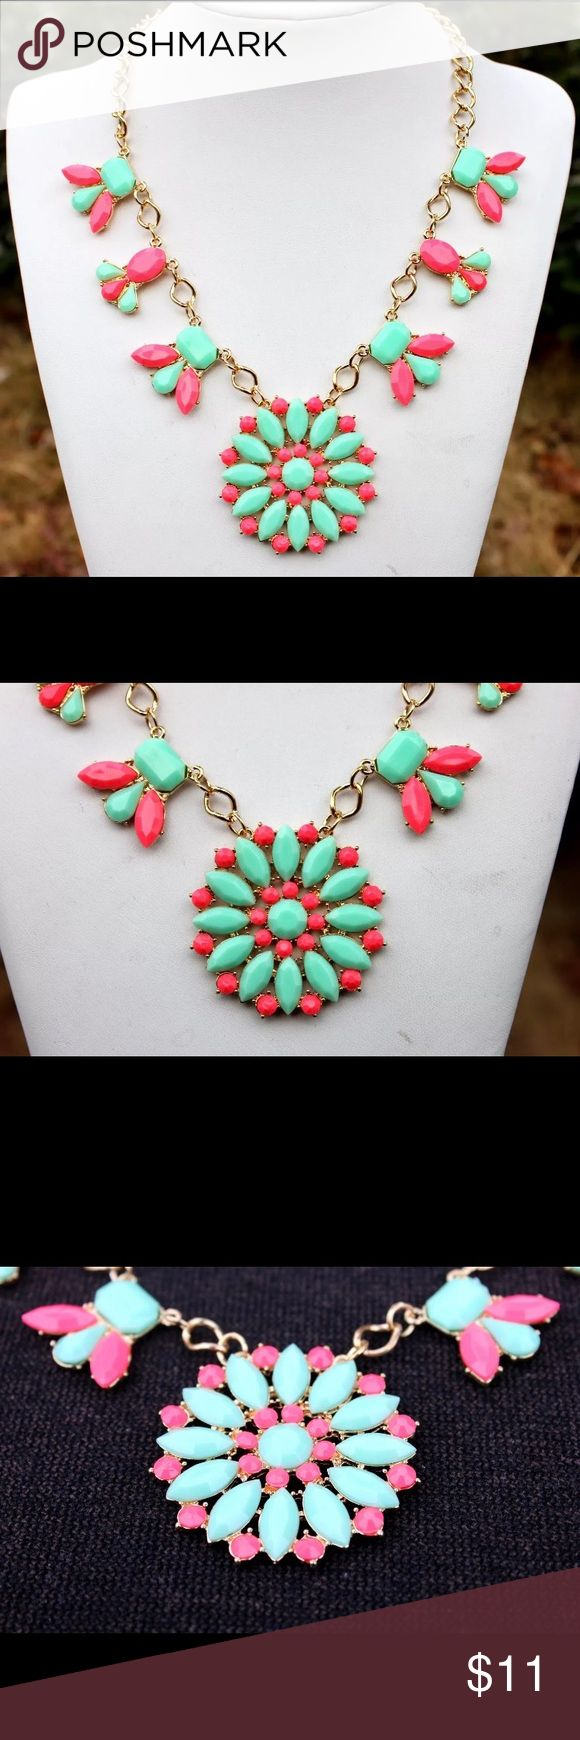 Women's Floral Necklace & Colorful Necklace Brand New Necklace & Bracelet 🌸🌷 Jewelry Necklaces